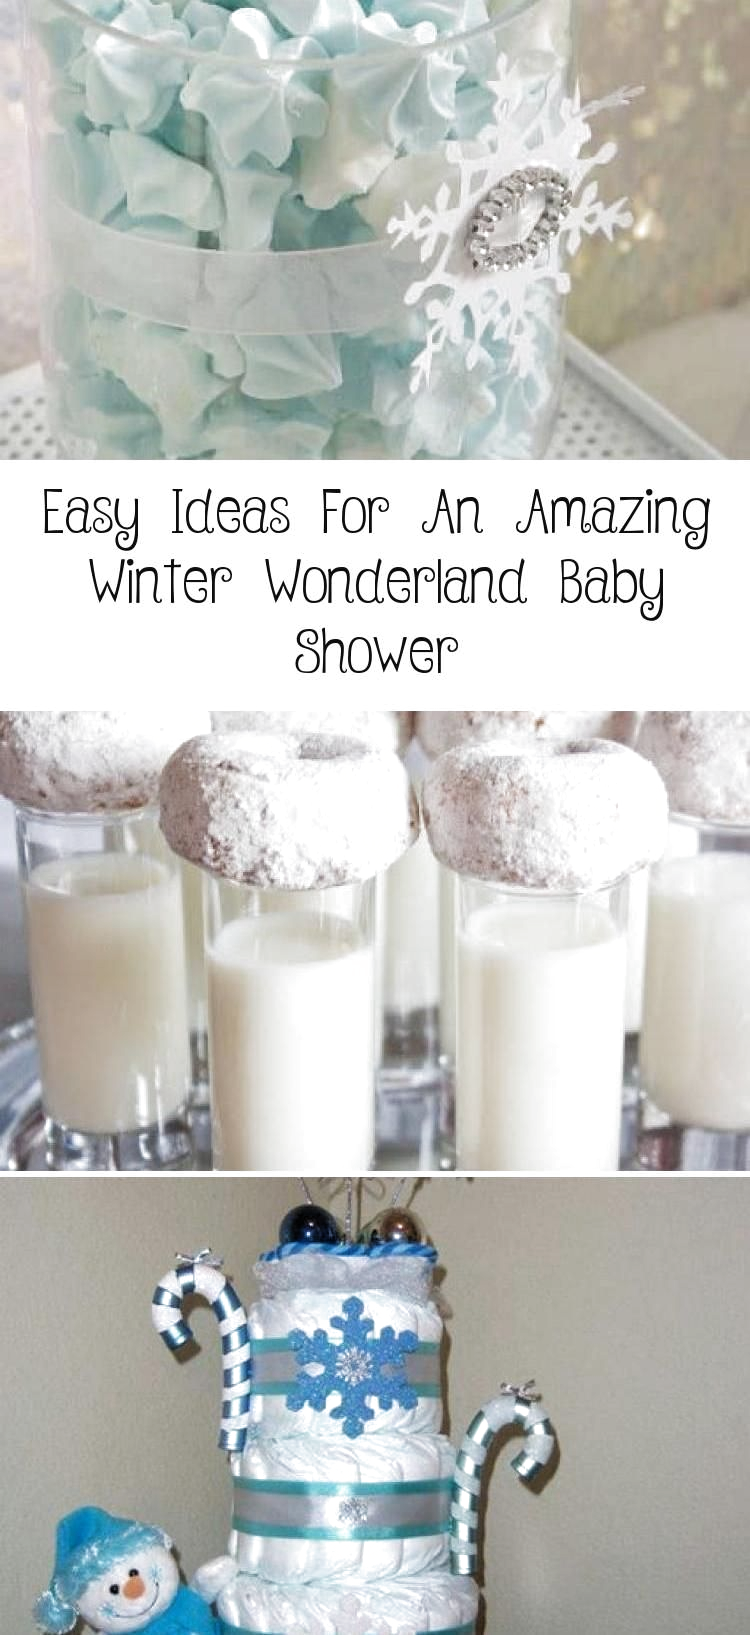 **Cold Outside Baby Shower Theme** Easy Ideas For An Amazing Winter Wonderland Baby Shower - ...